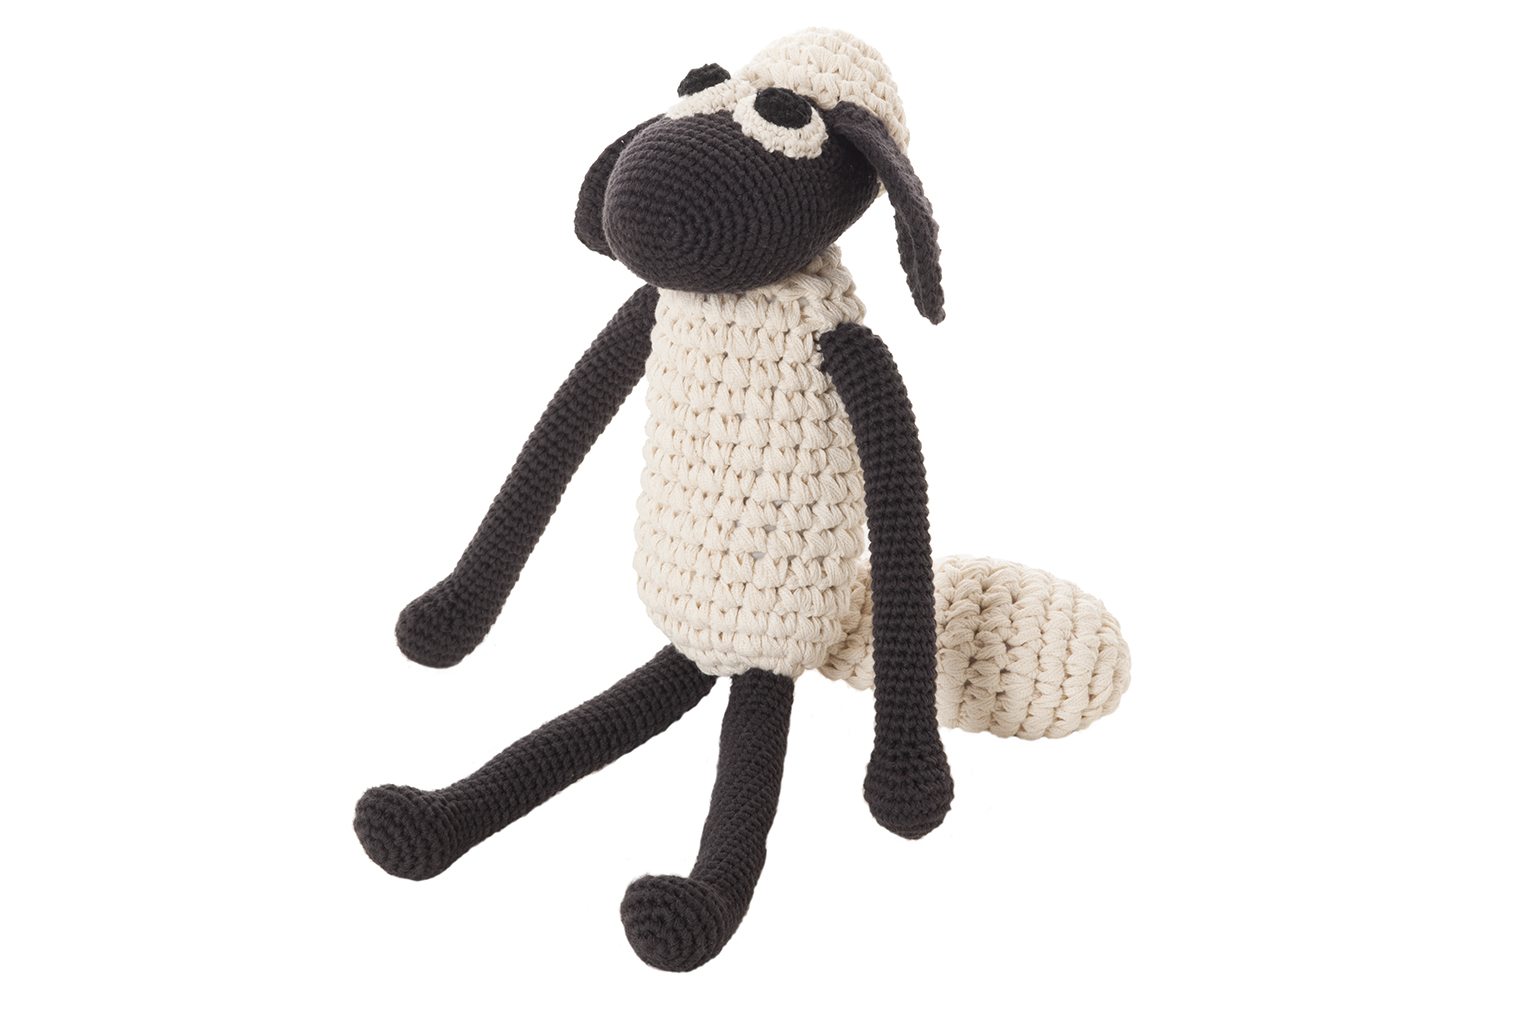 ANNE-CLAIRE PETIT_SHAUN THE SHEEP 01.jpg